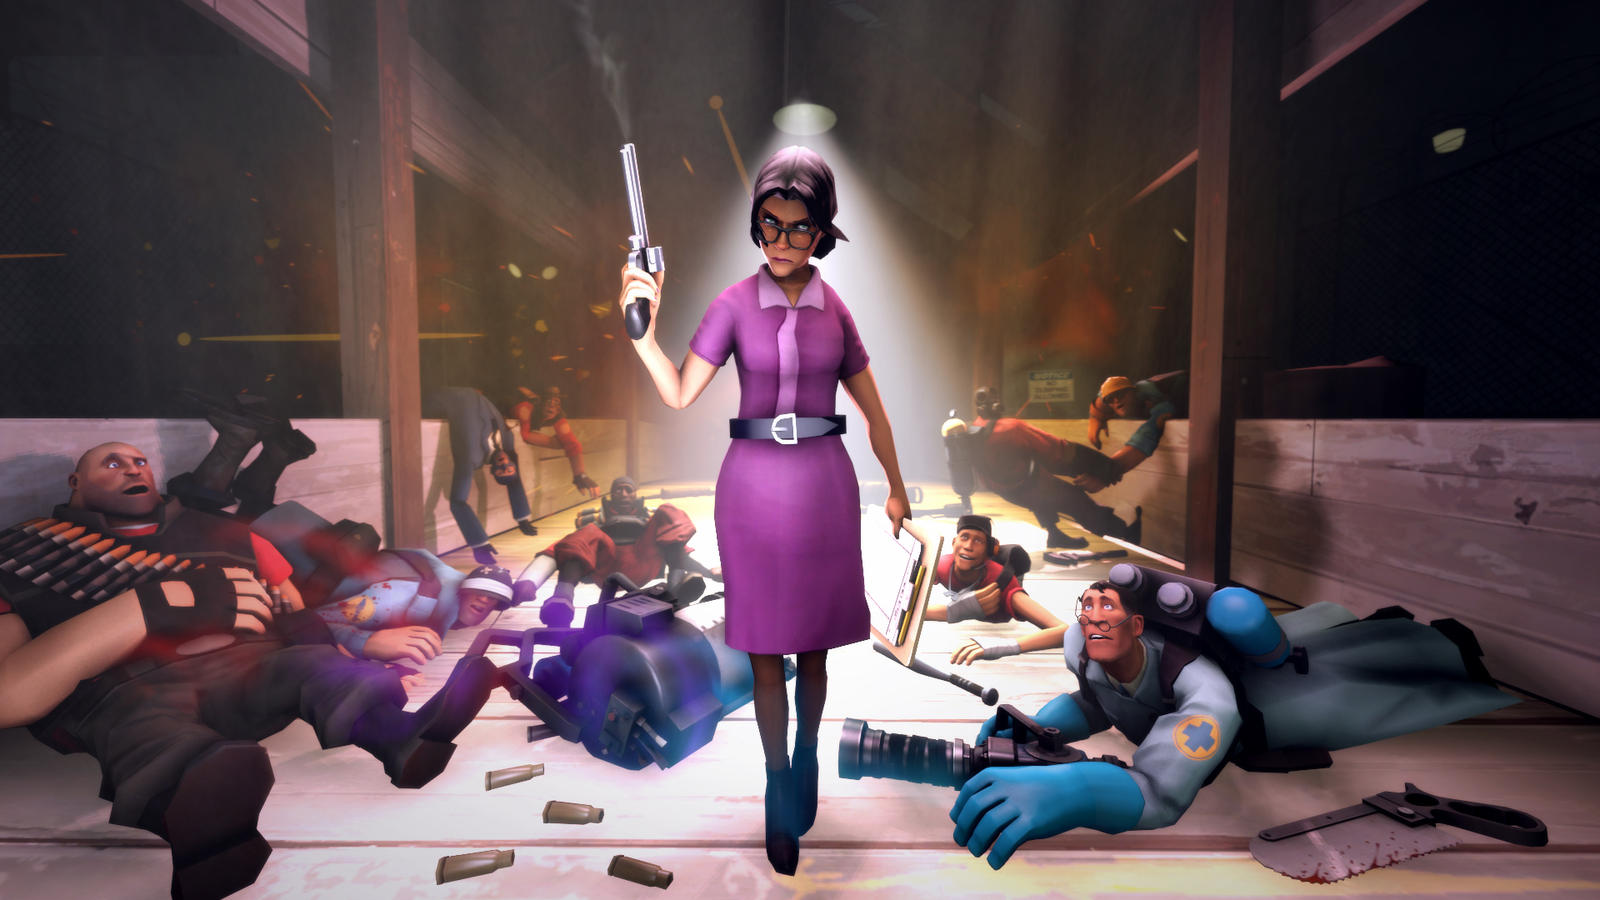 Meet Miss Pauling by uberchain